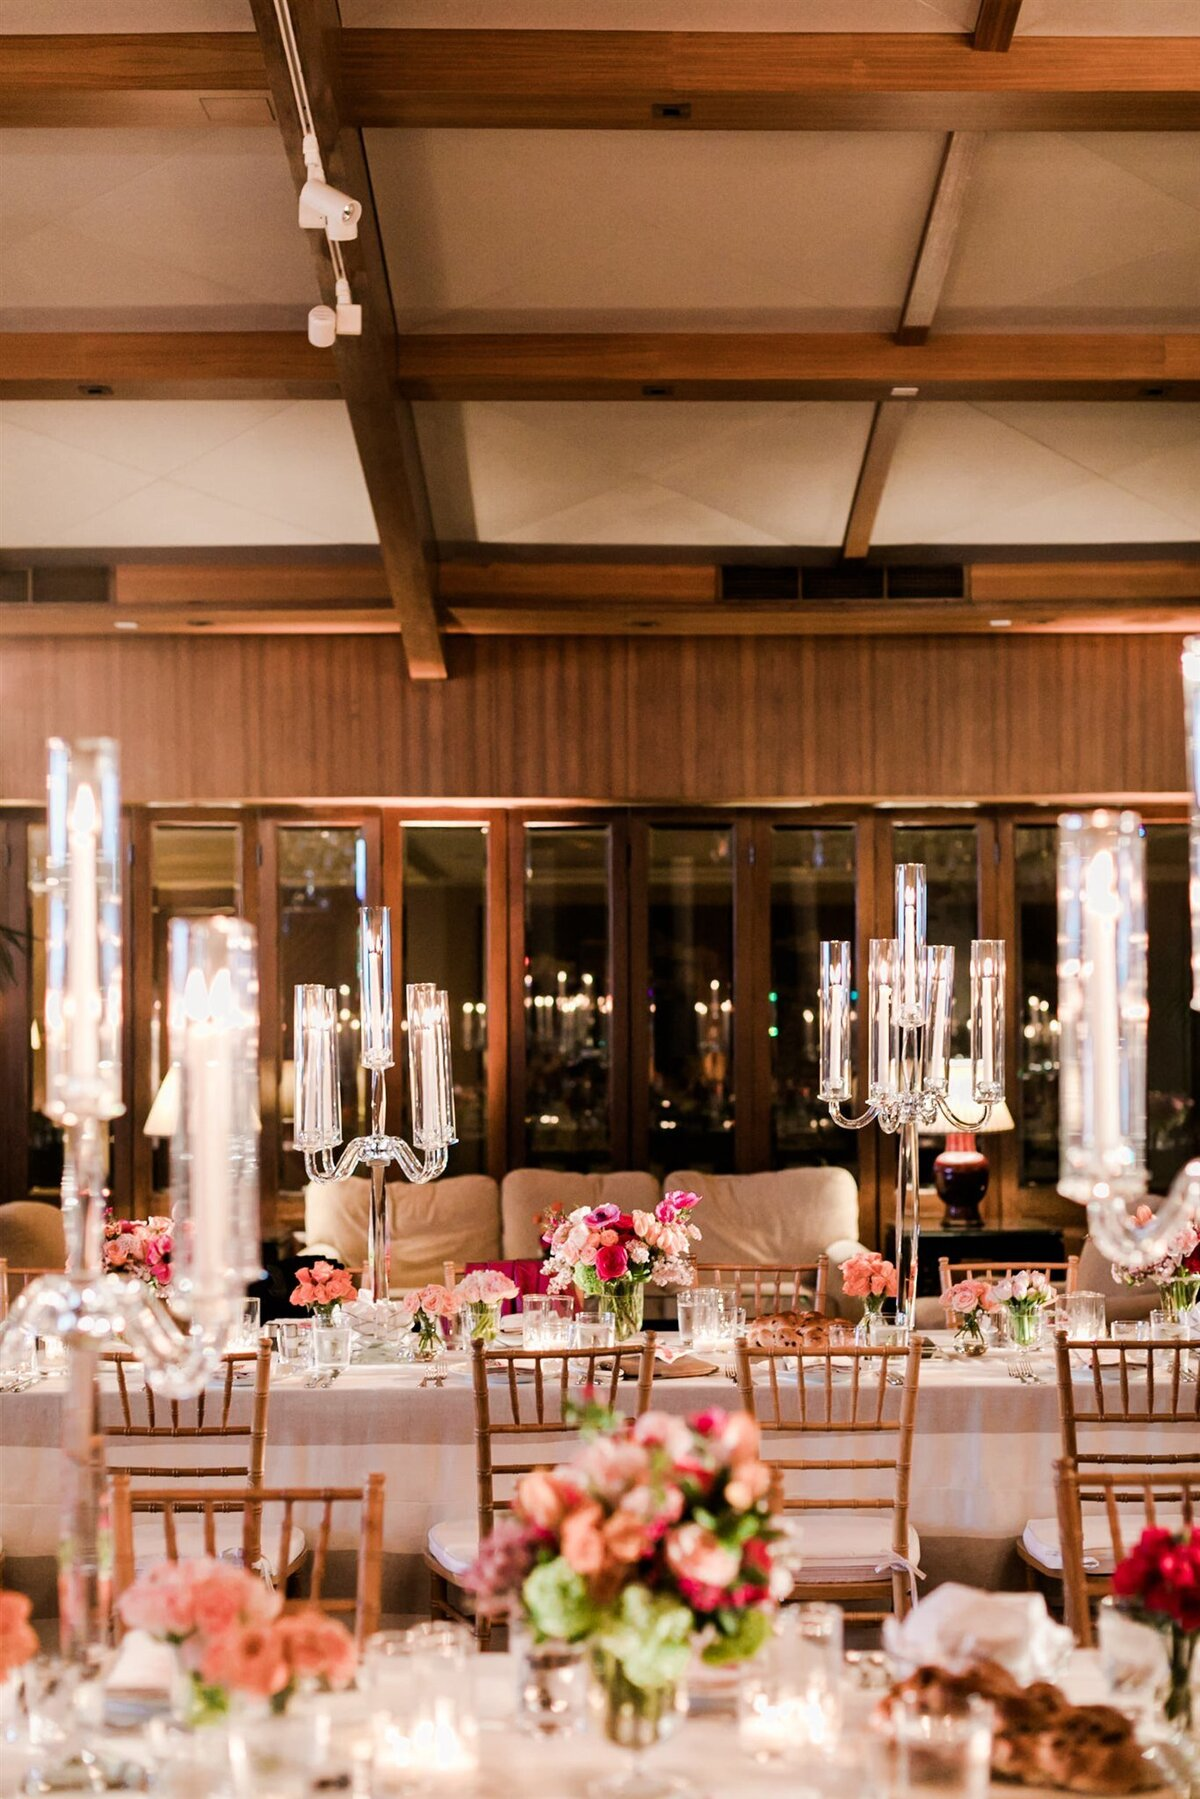 Colorful Beverly Hills Rehearsal Dinner-Valorie Darling Photography-0153